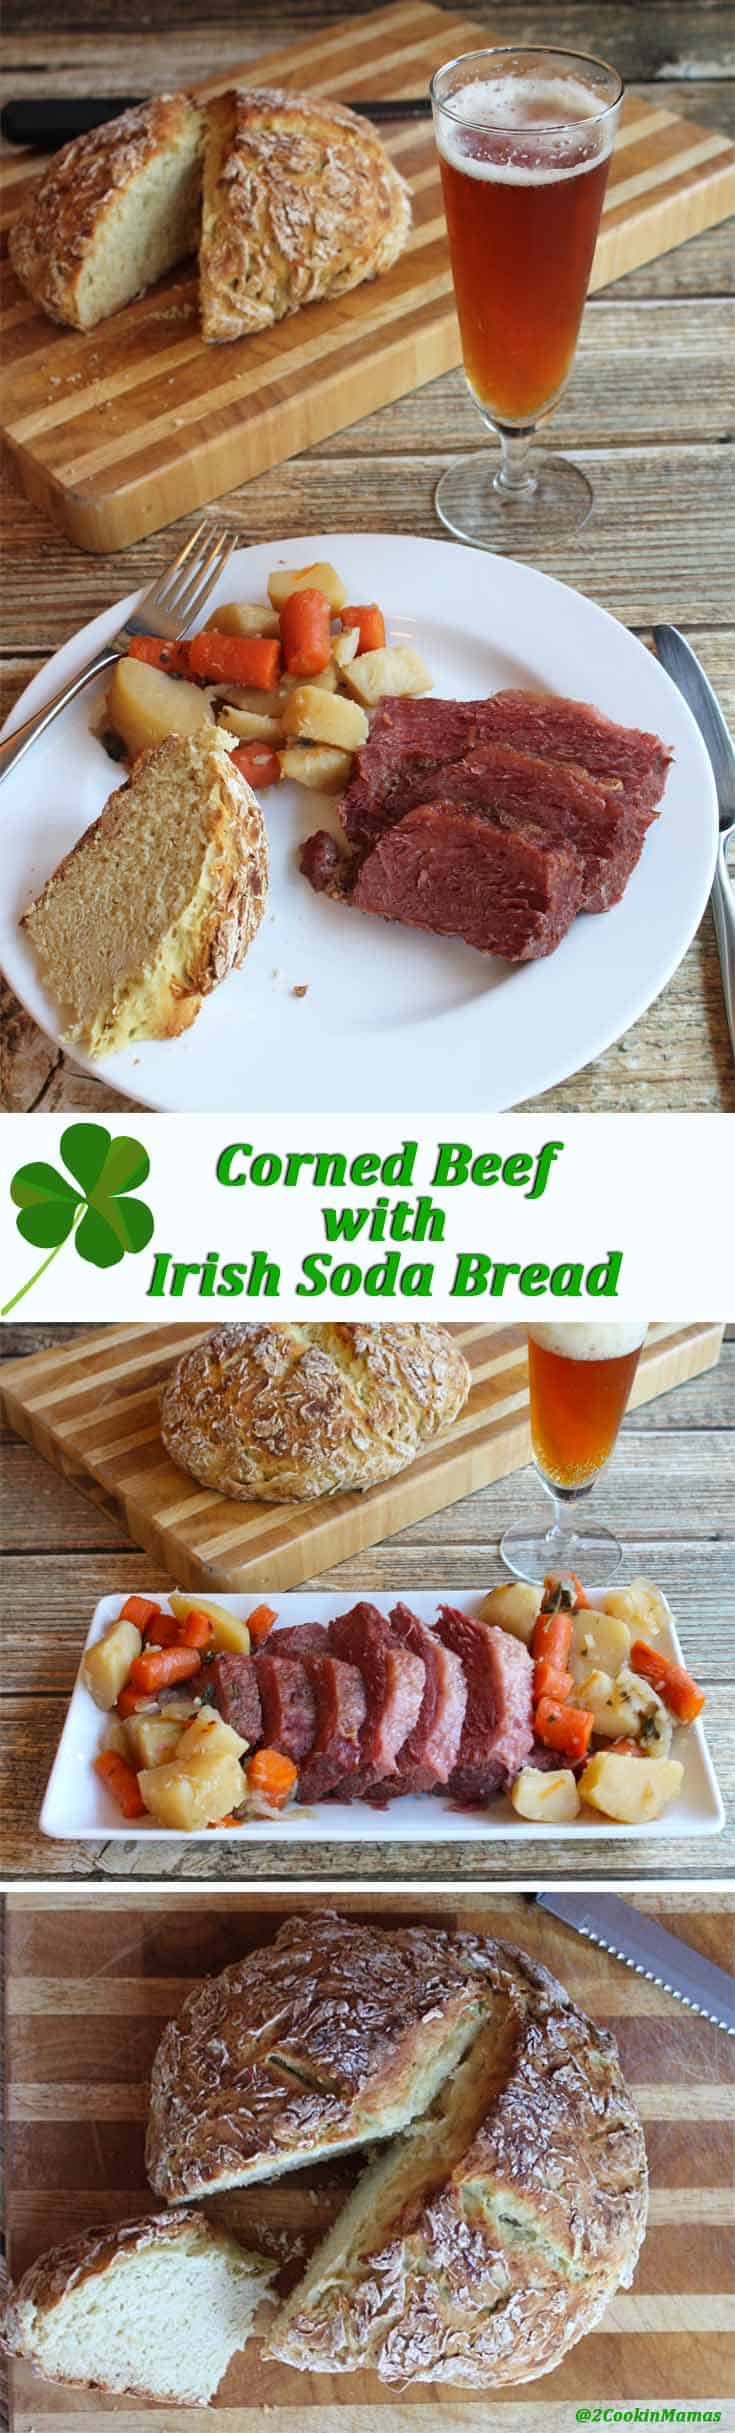 Corned Beef and Irish Soda Bread   2CookinMamas Corned beef in the crockpot is so easy - set it and forget it and come home to a fully cooked dinner. Add quick soda bread to make it perfect for St. Patrick's Day!